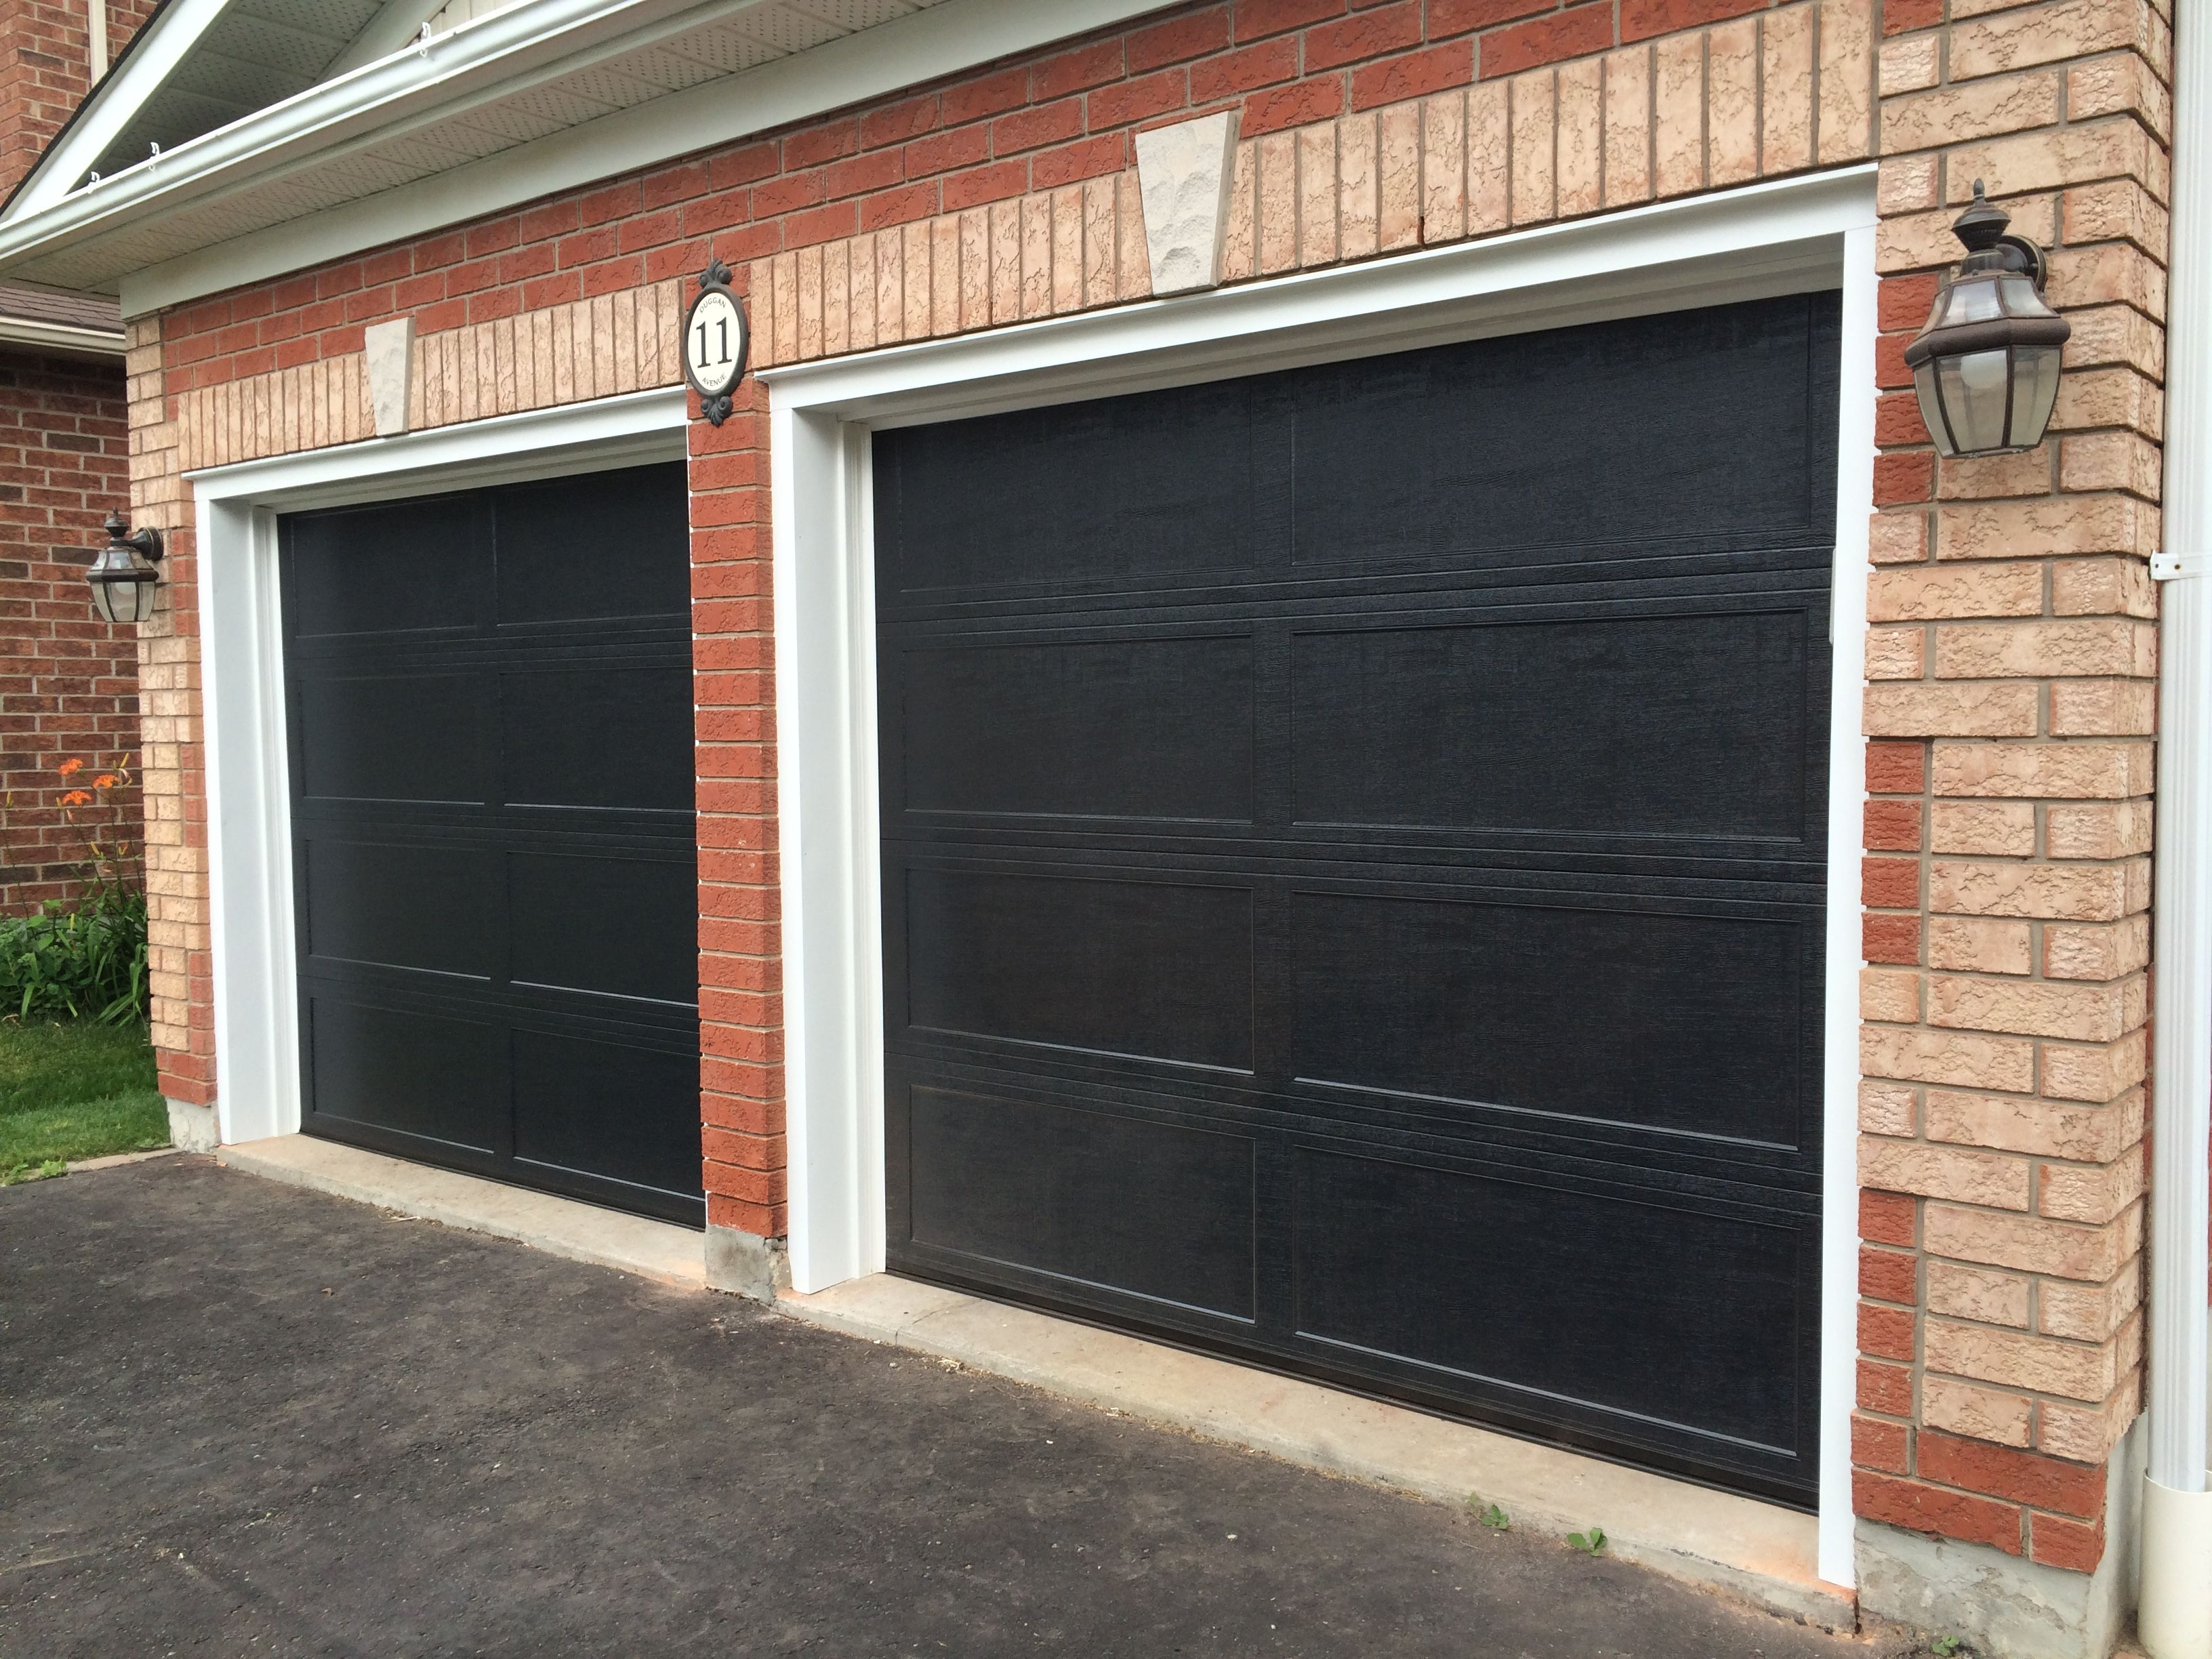 8x7 Haas 673 Recessed Panel Black Doors With White Aluminum Capping Garage Doors For Sale Garage Doors Modern Garage Doors